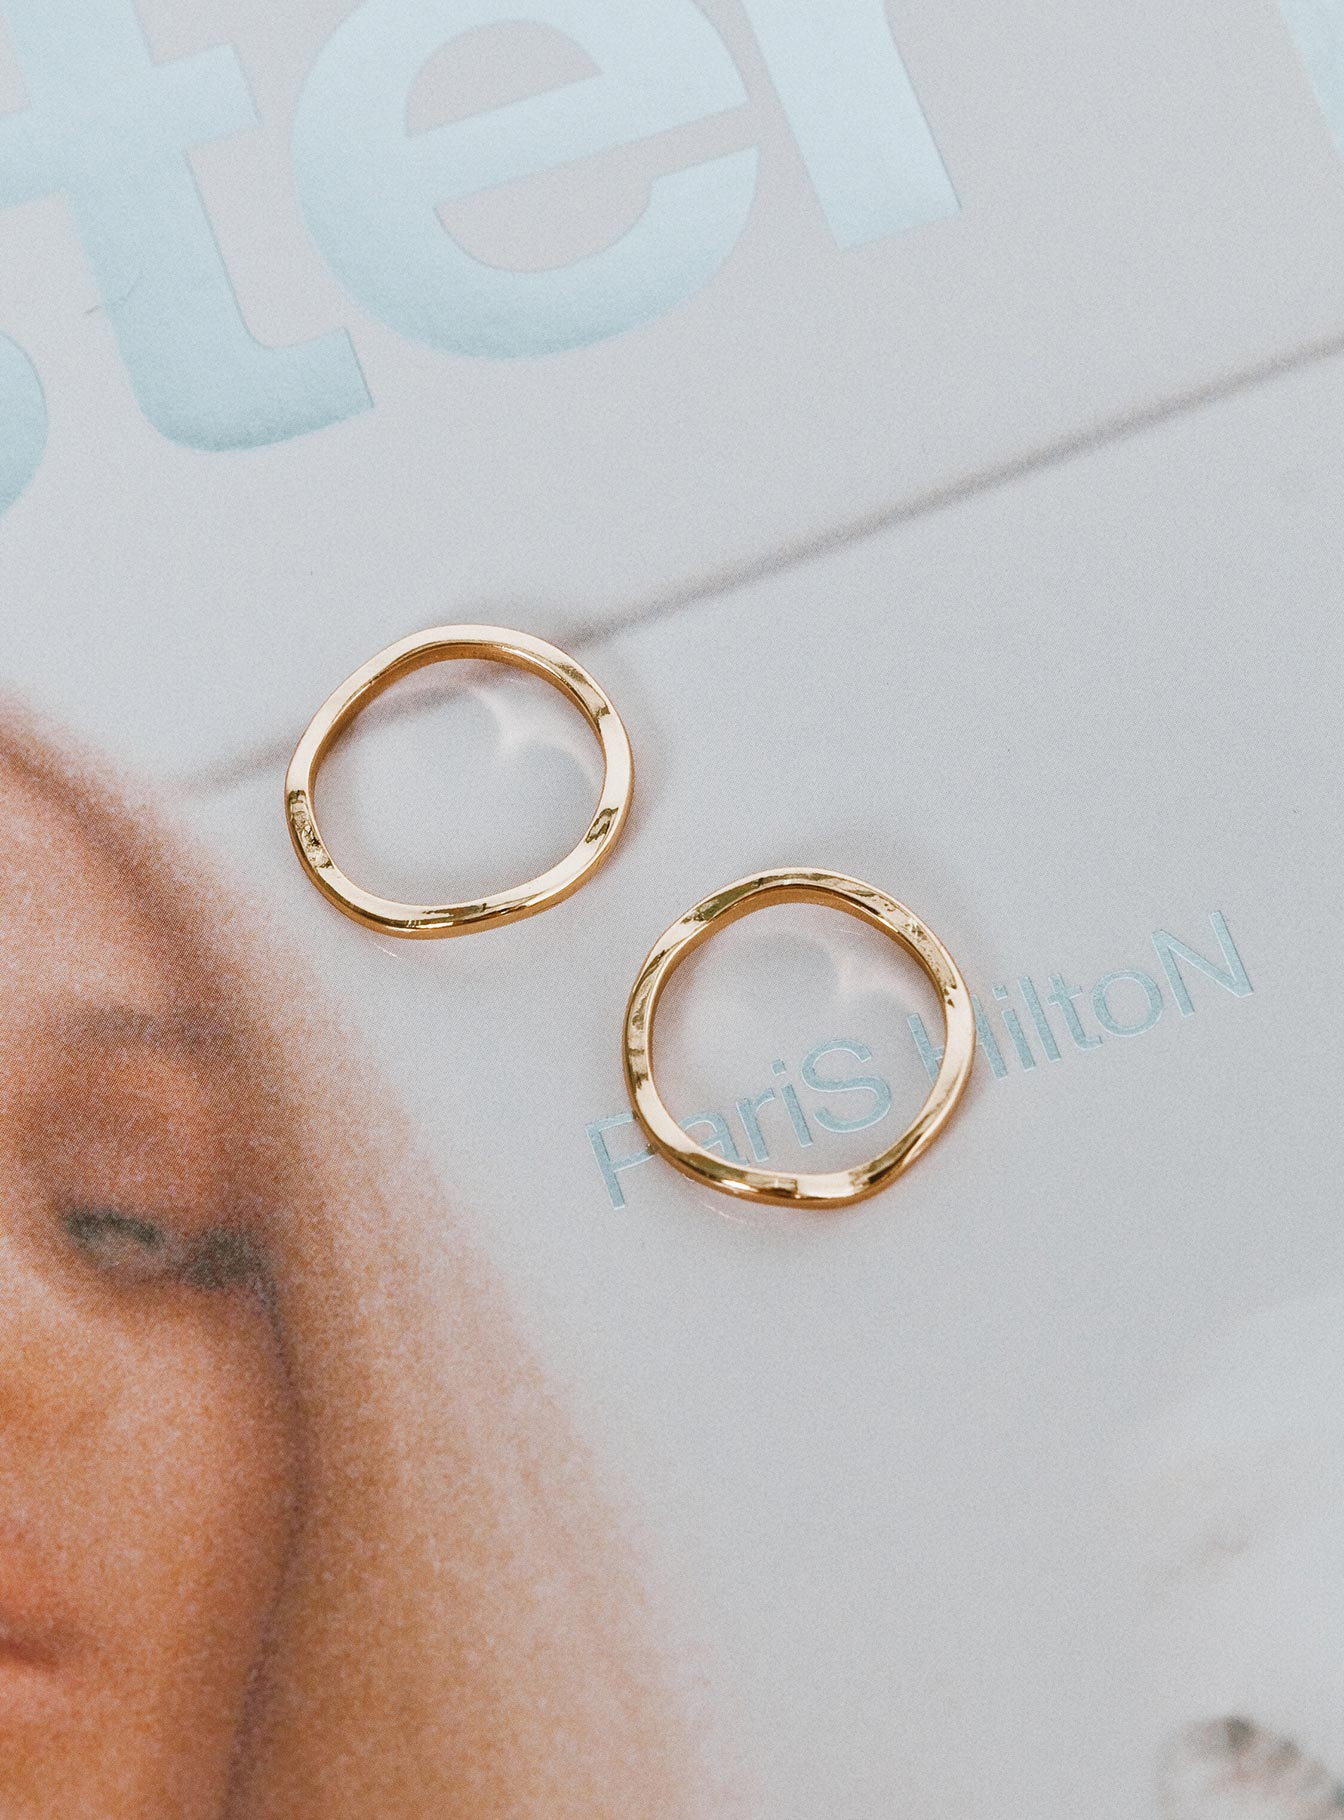 Minc Collections Cayenne Ring Set